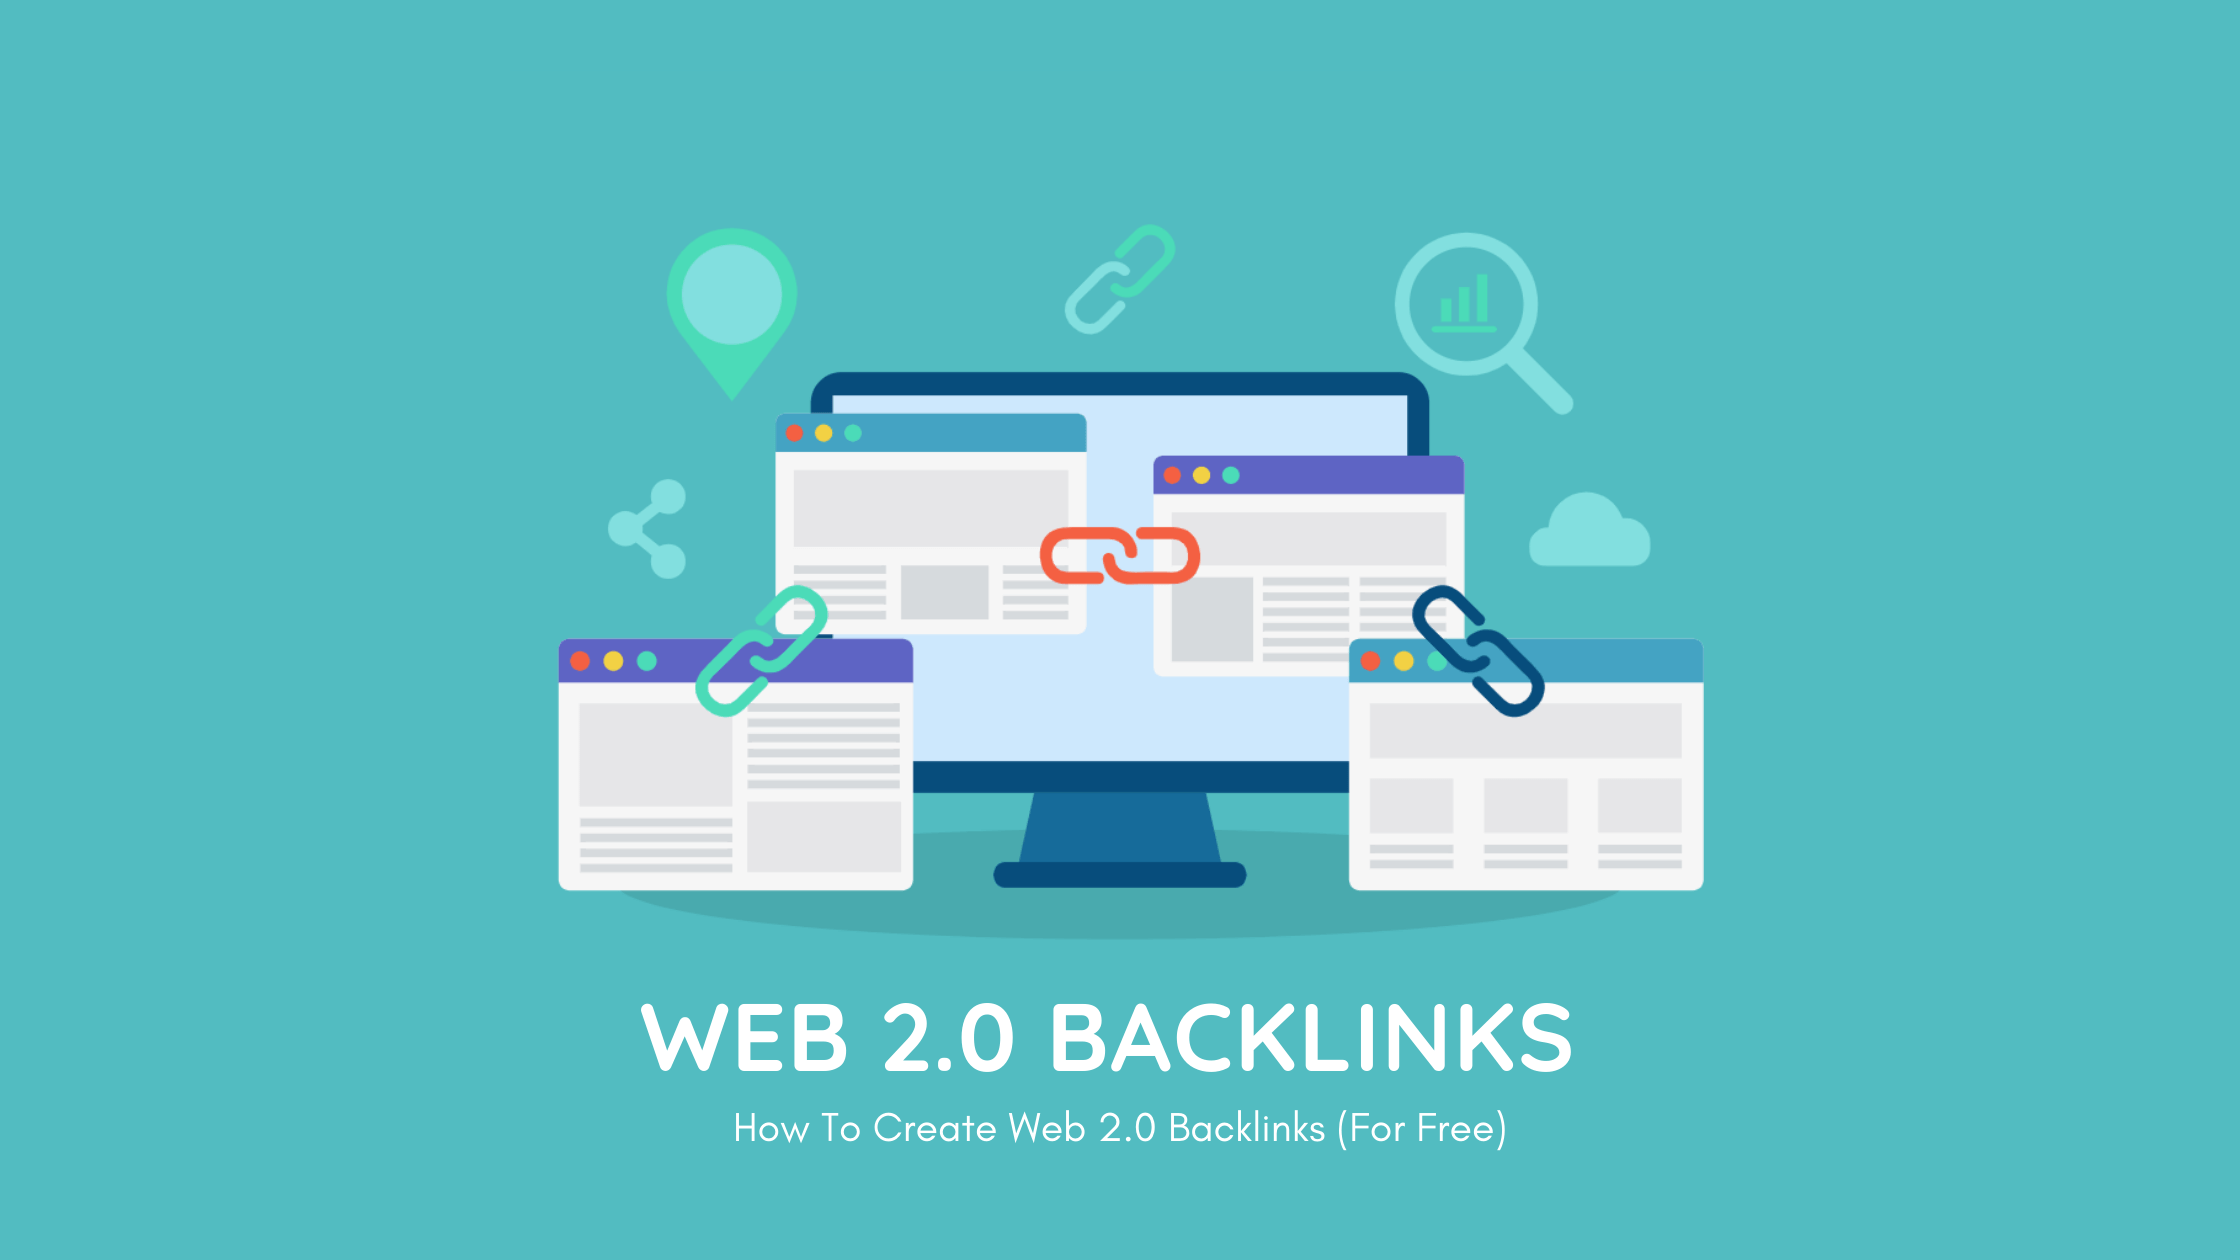 how to create web 2.0 backlinks